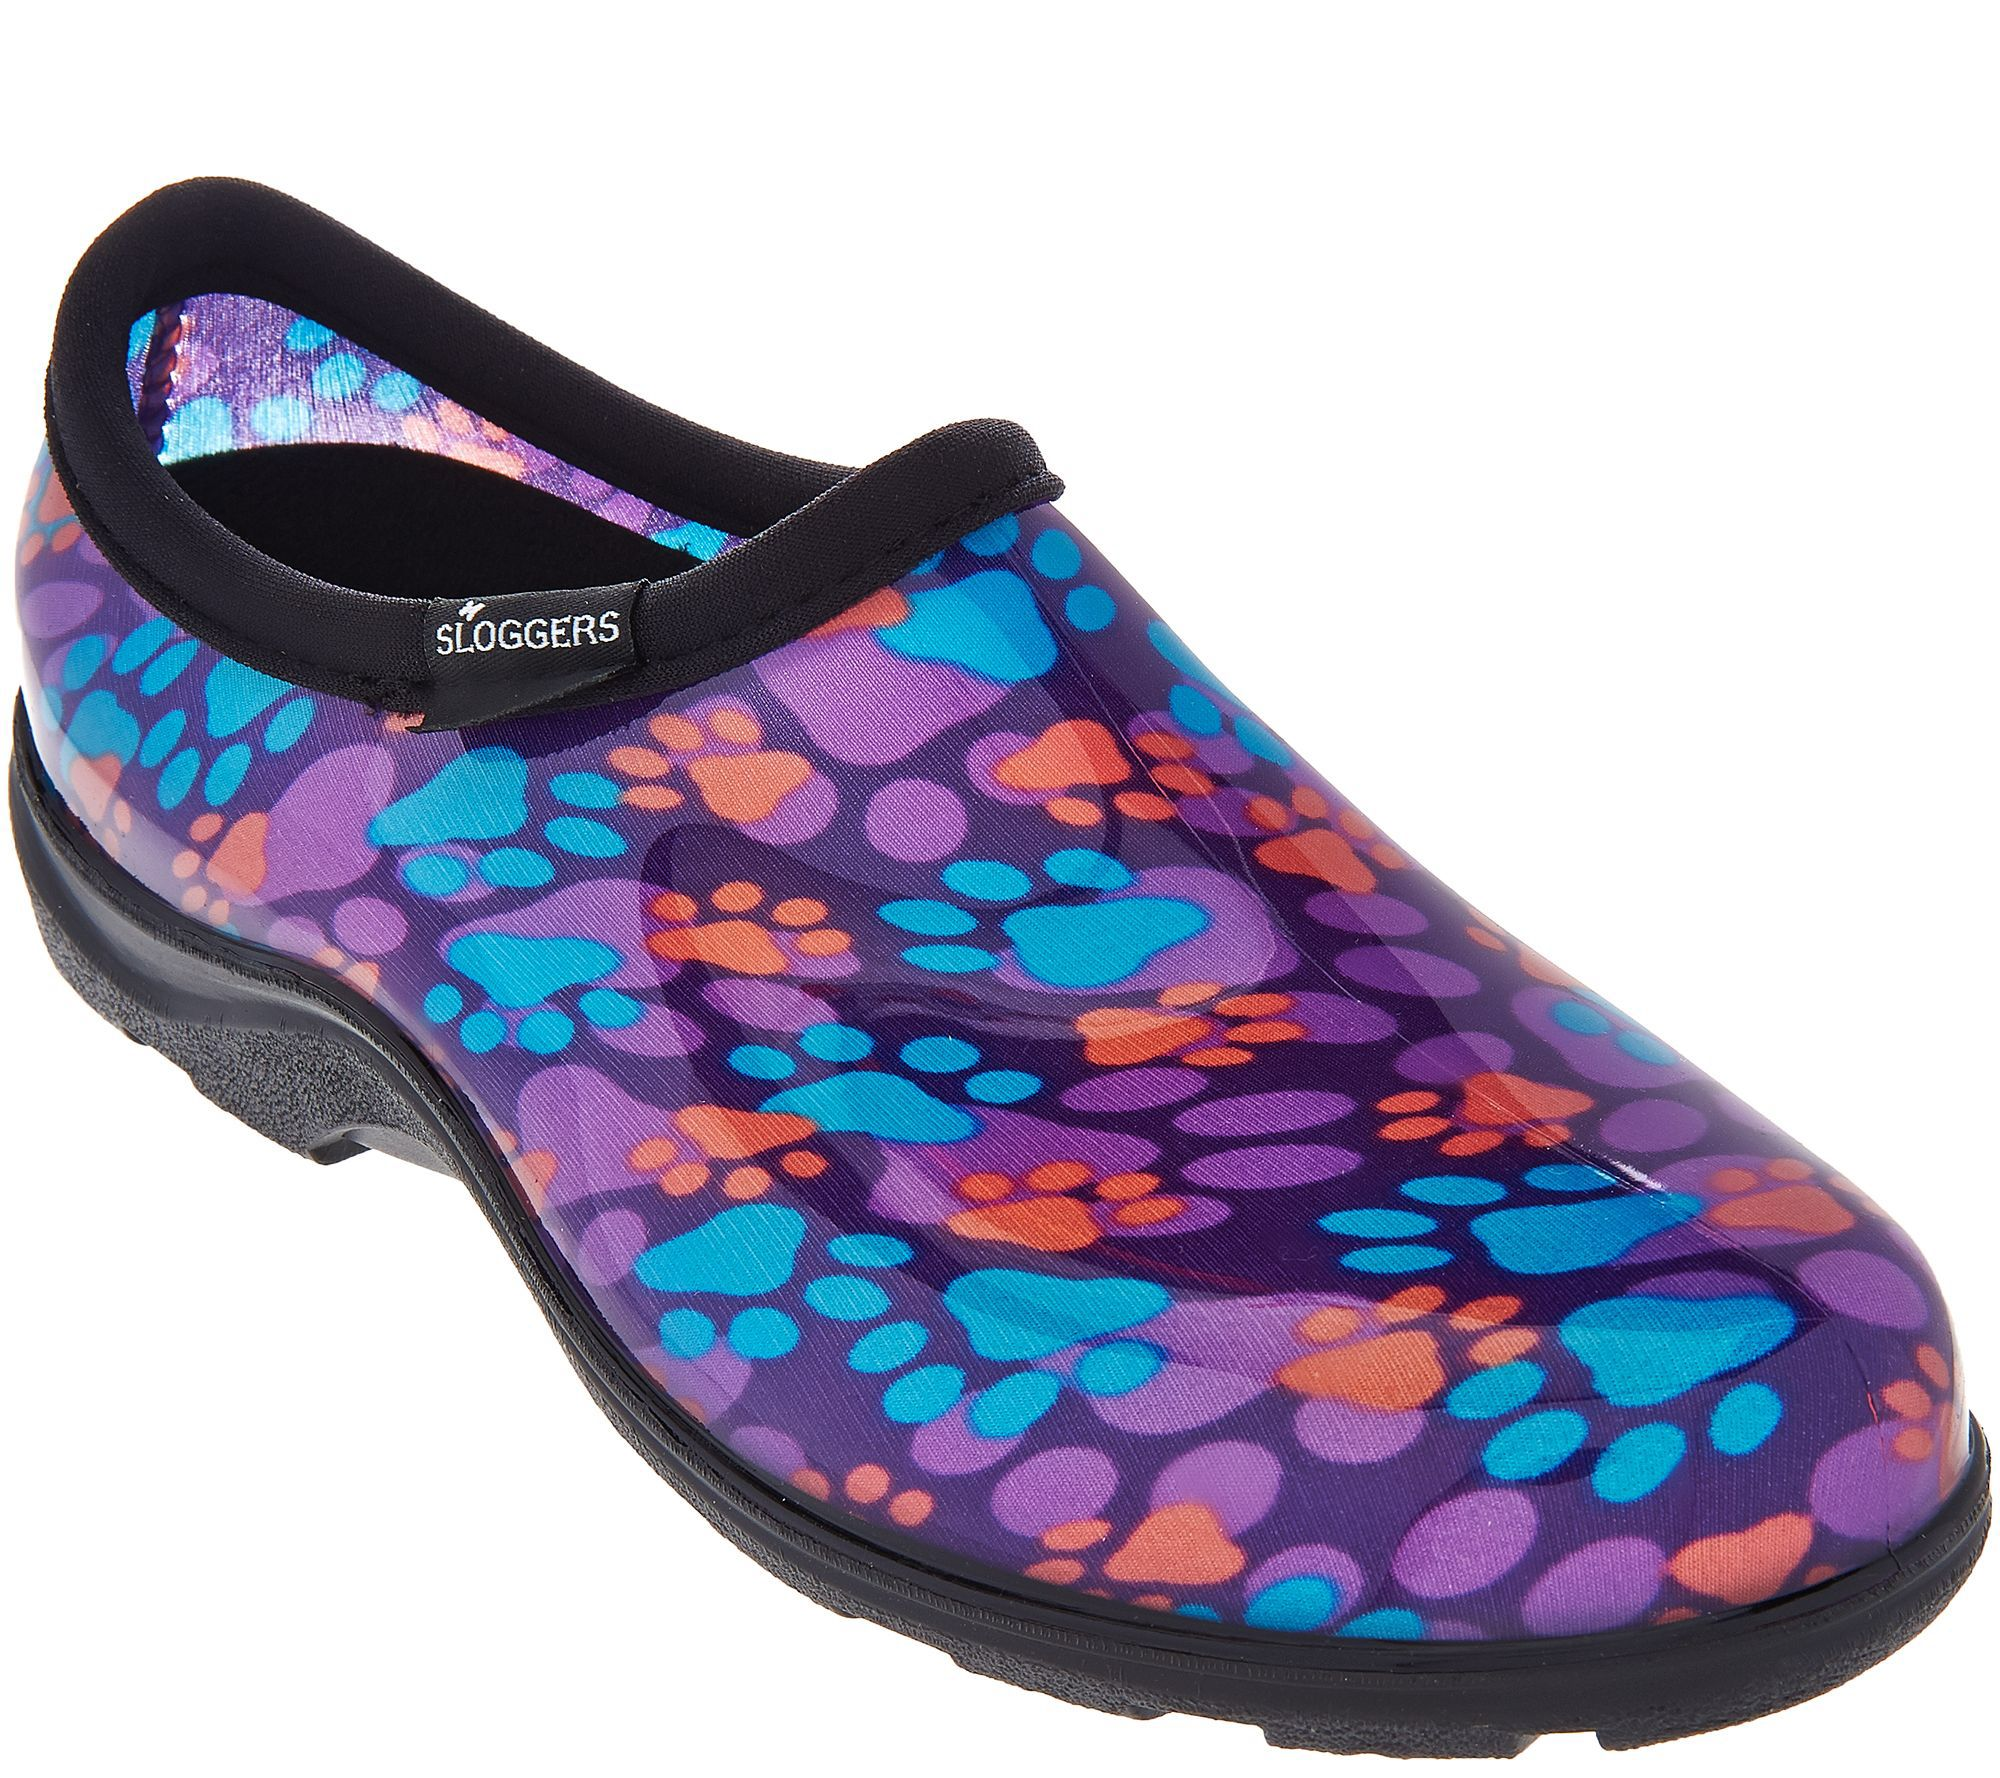 Sloggers Multi-Color Paw Print Garden Shoes w/ Comfort Insoles